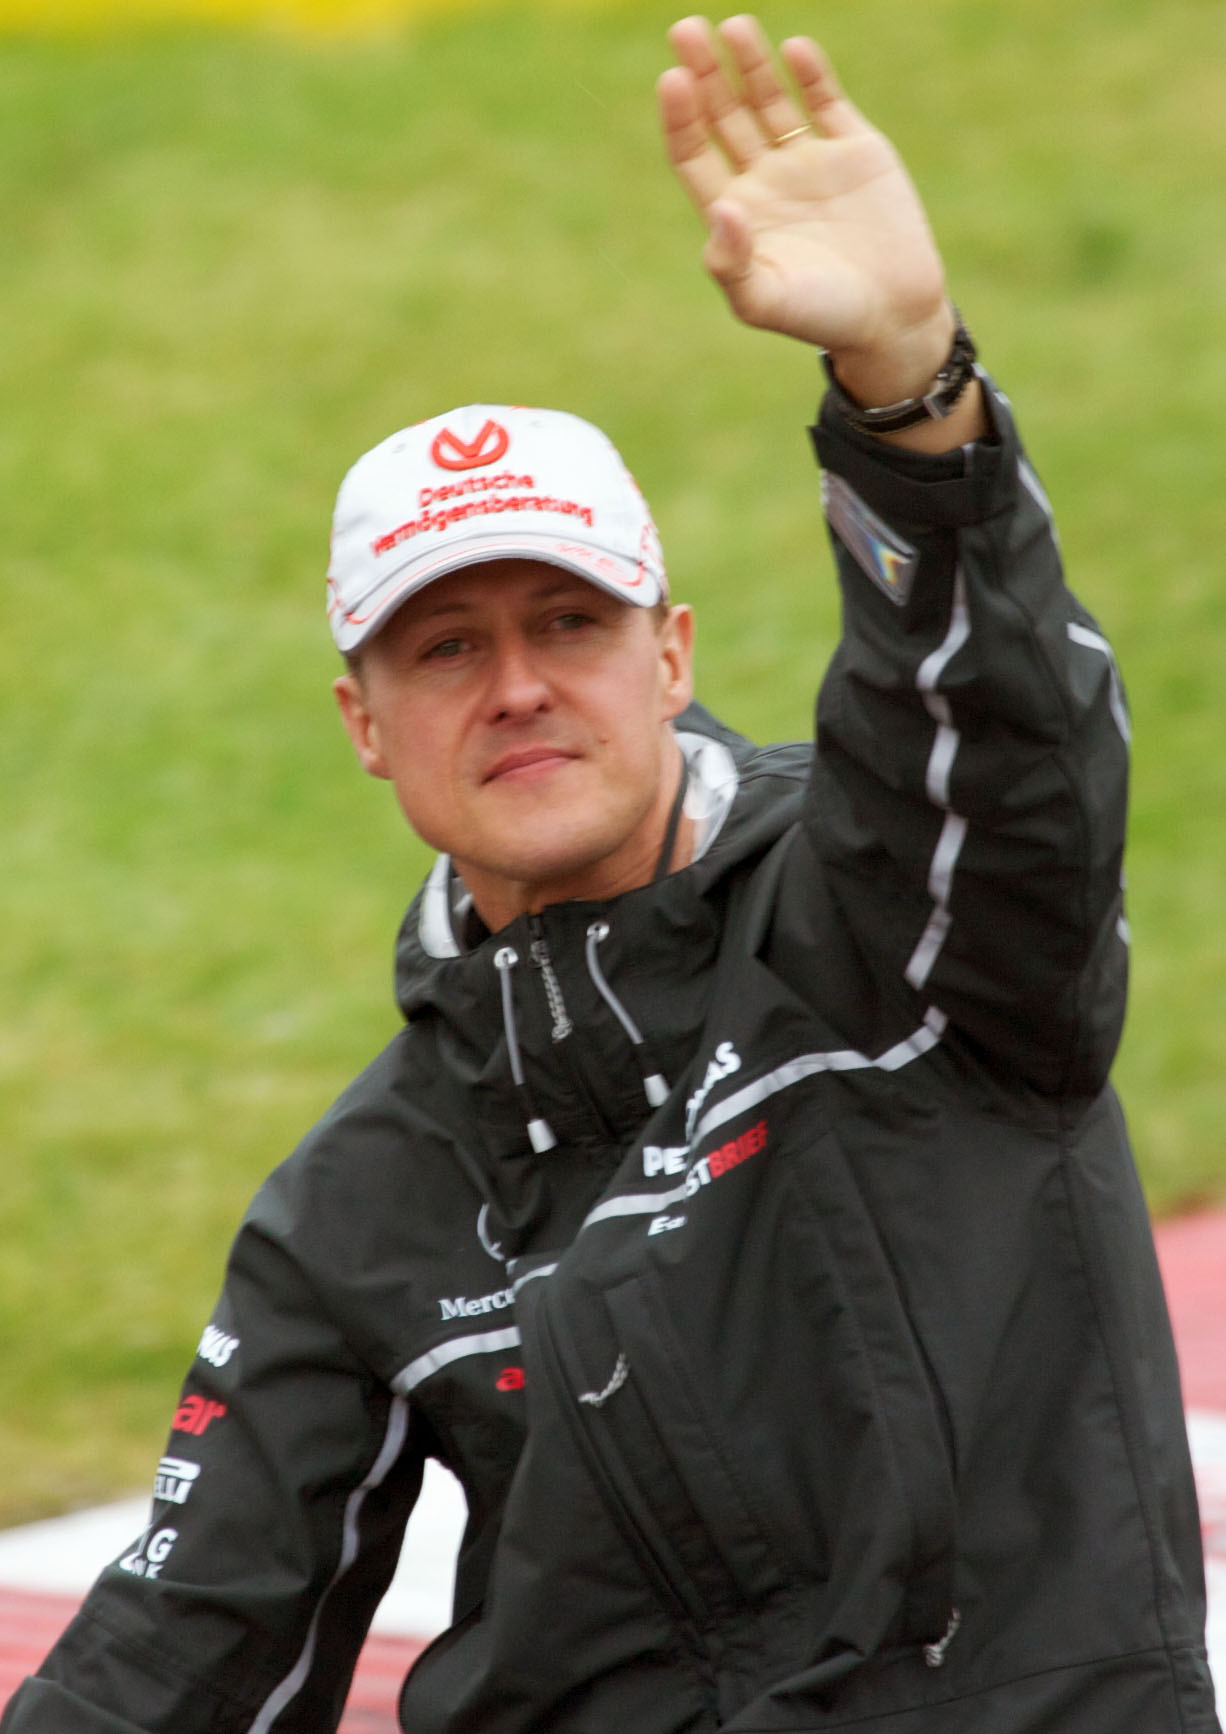 Schumi di GP Kanada 2011 cropped Michael Schumachers traumatic brain injury explained